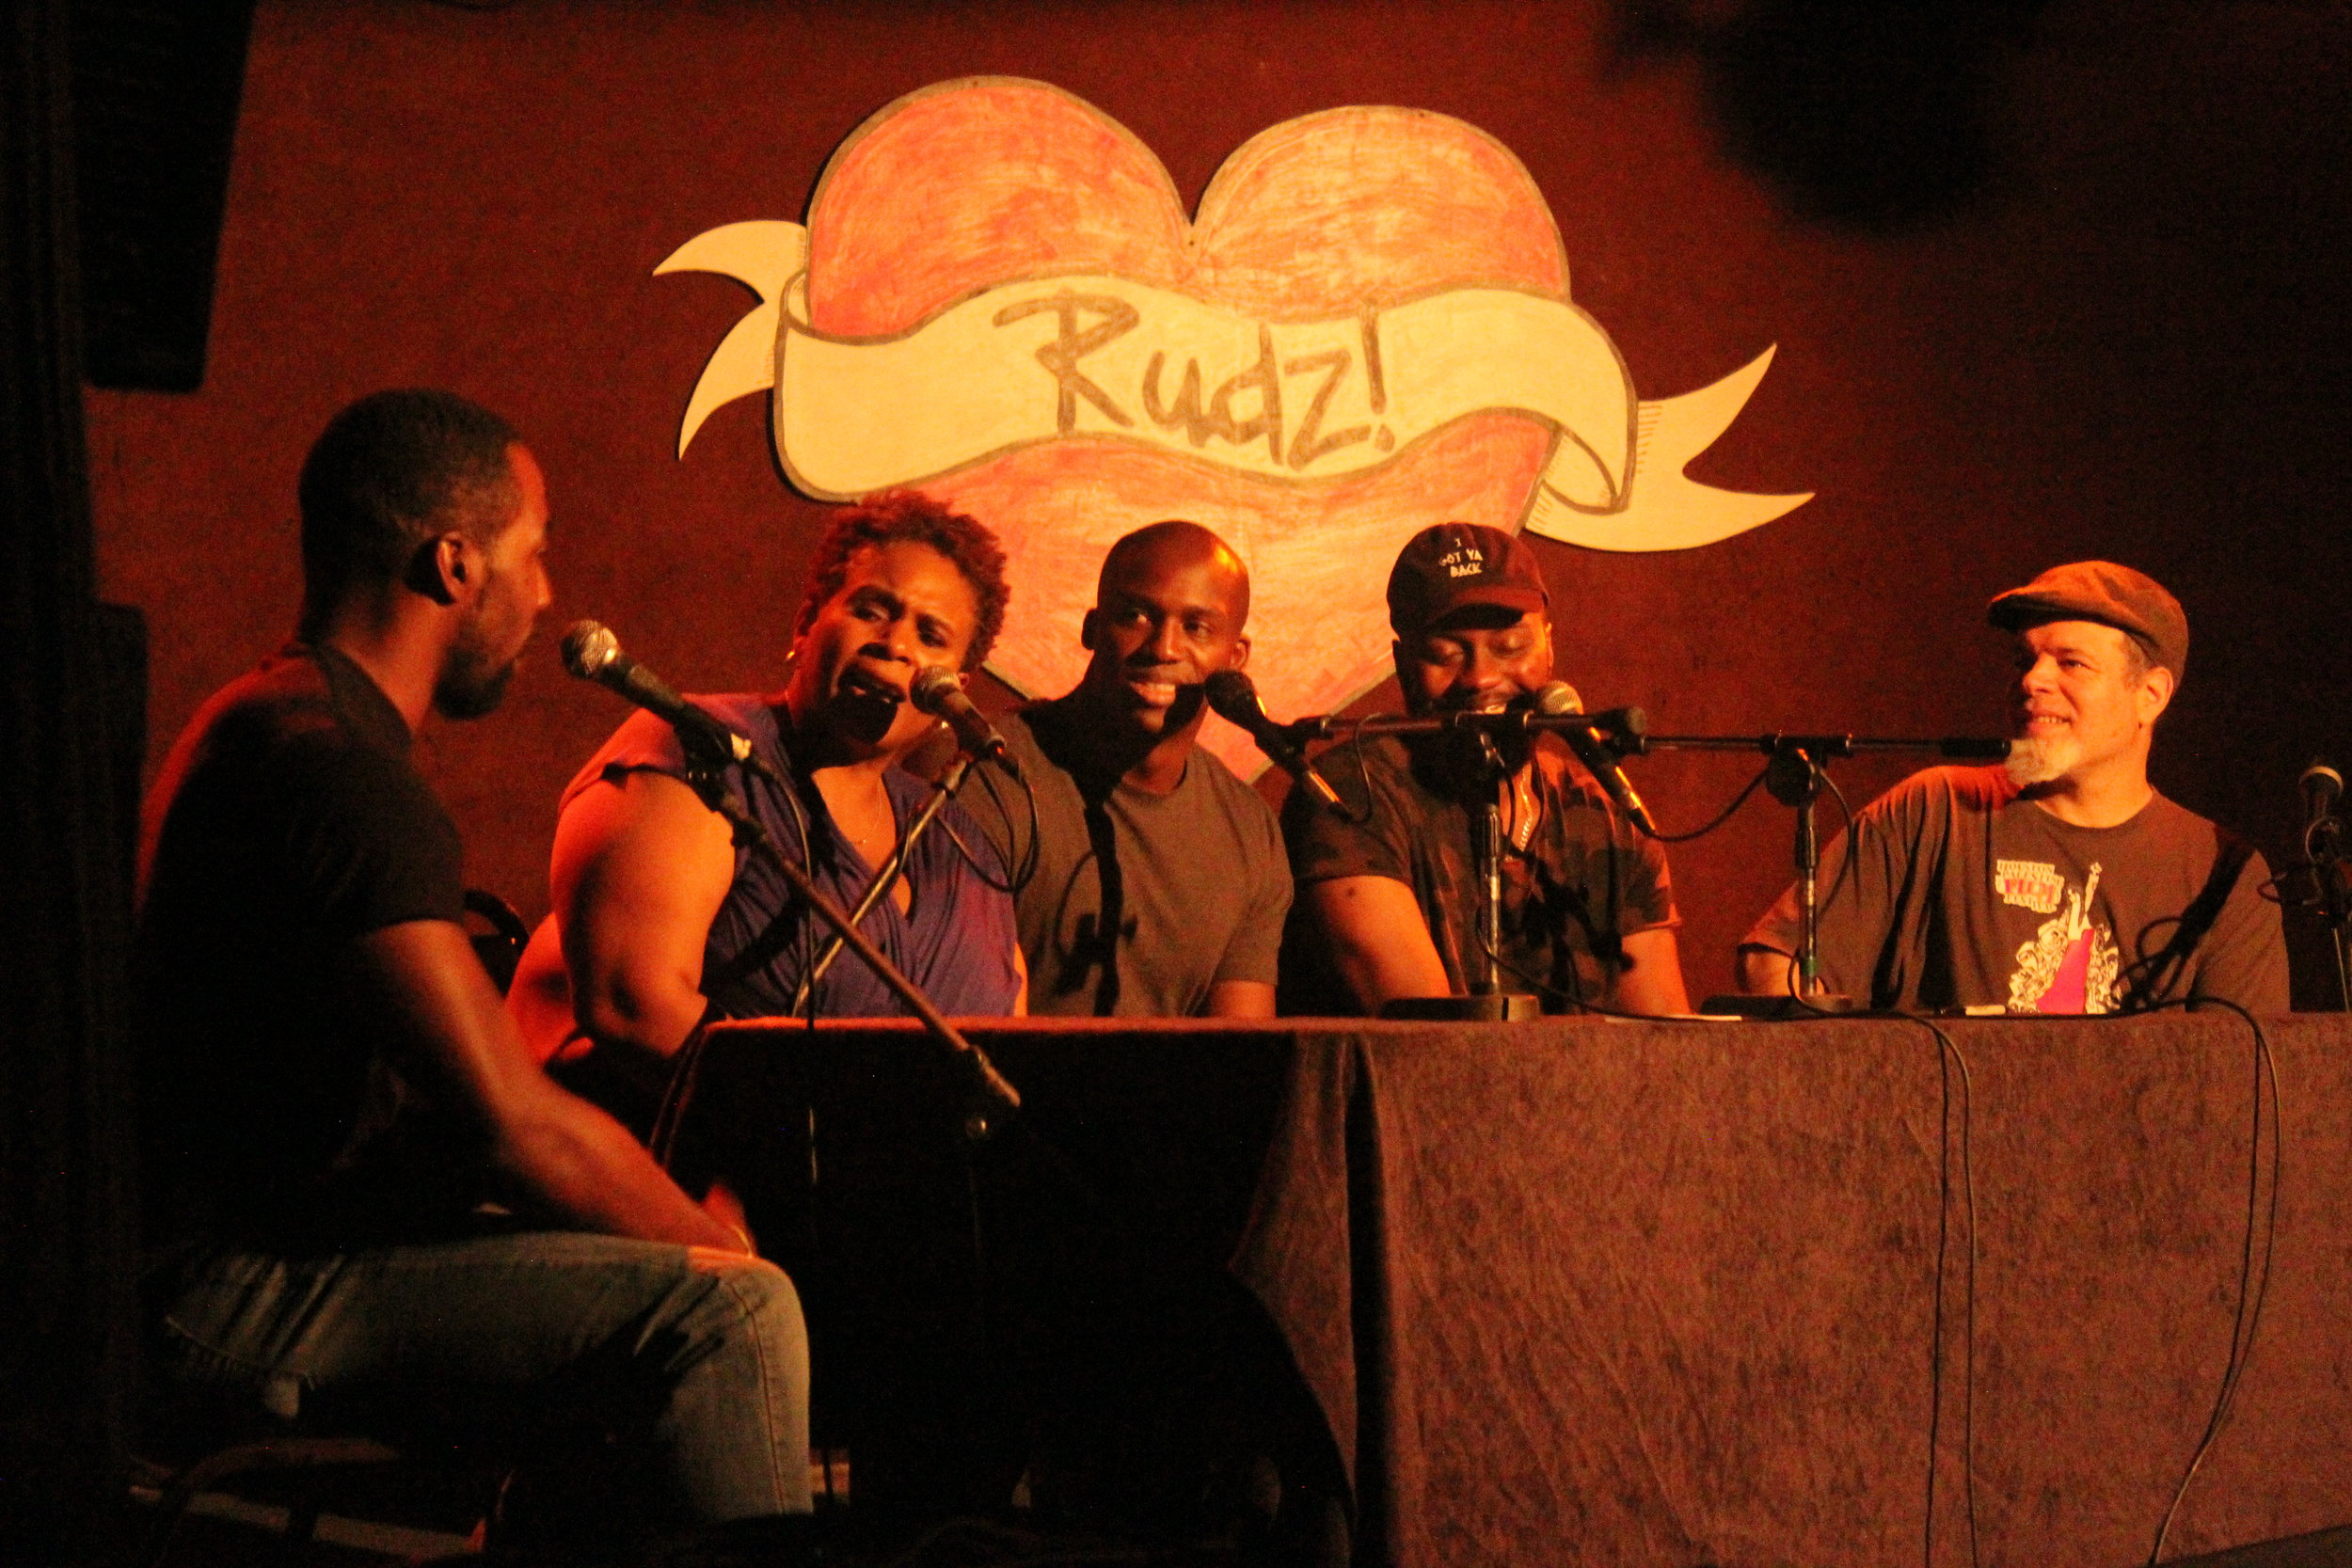 Award-winning & nationally touring opening improv comedy act   Can't Tell Us Nothing   troupe members Antoine, Tandi, Amechi, and Jon interview their guest  Nick Cooper  (  Free Radicals  ,   Houston DSA  ). The comedians jump back and forth between scenes & characters made up on-the-spot, and the guest interview whose answers inspire the next comedic scene.